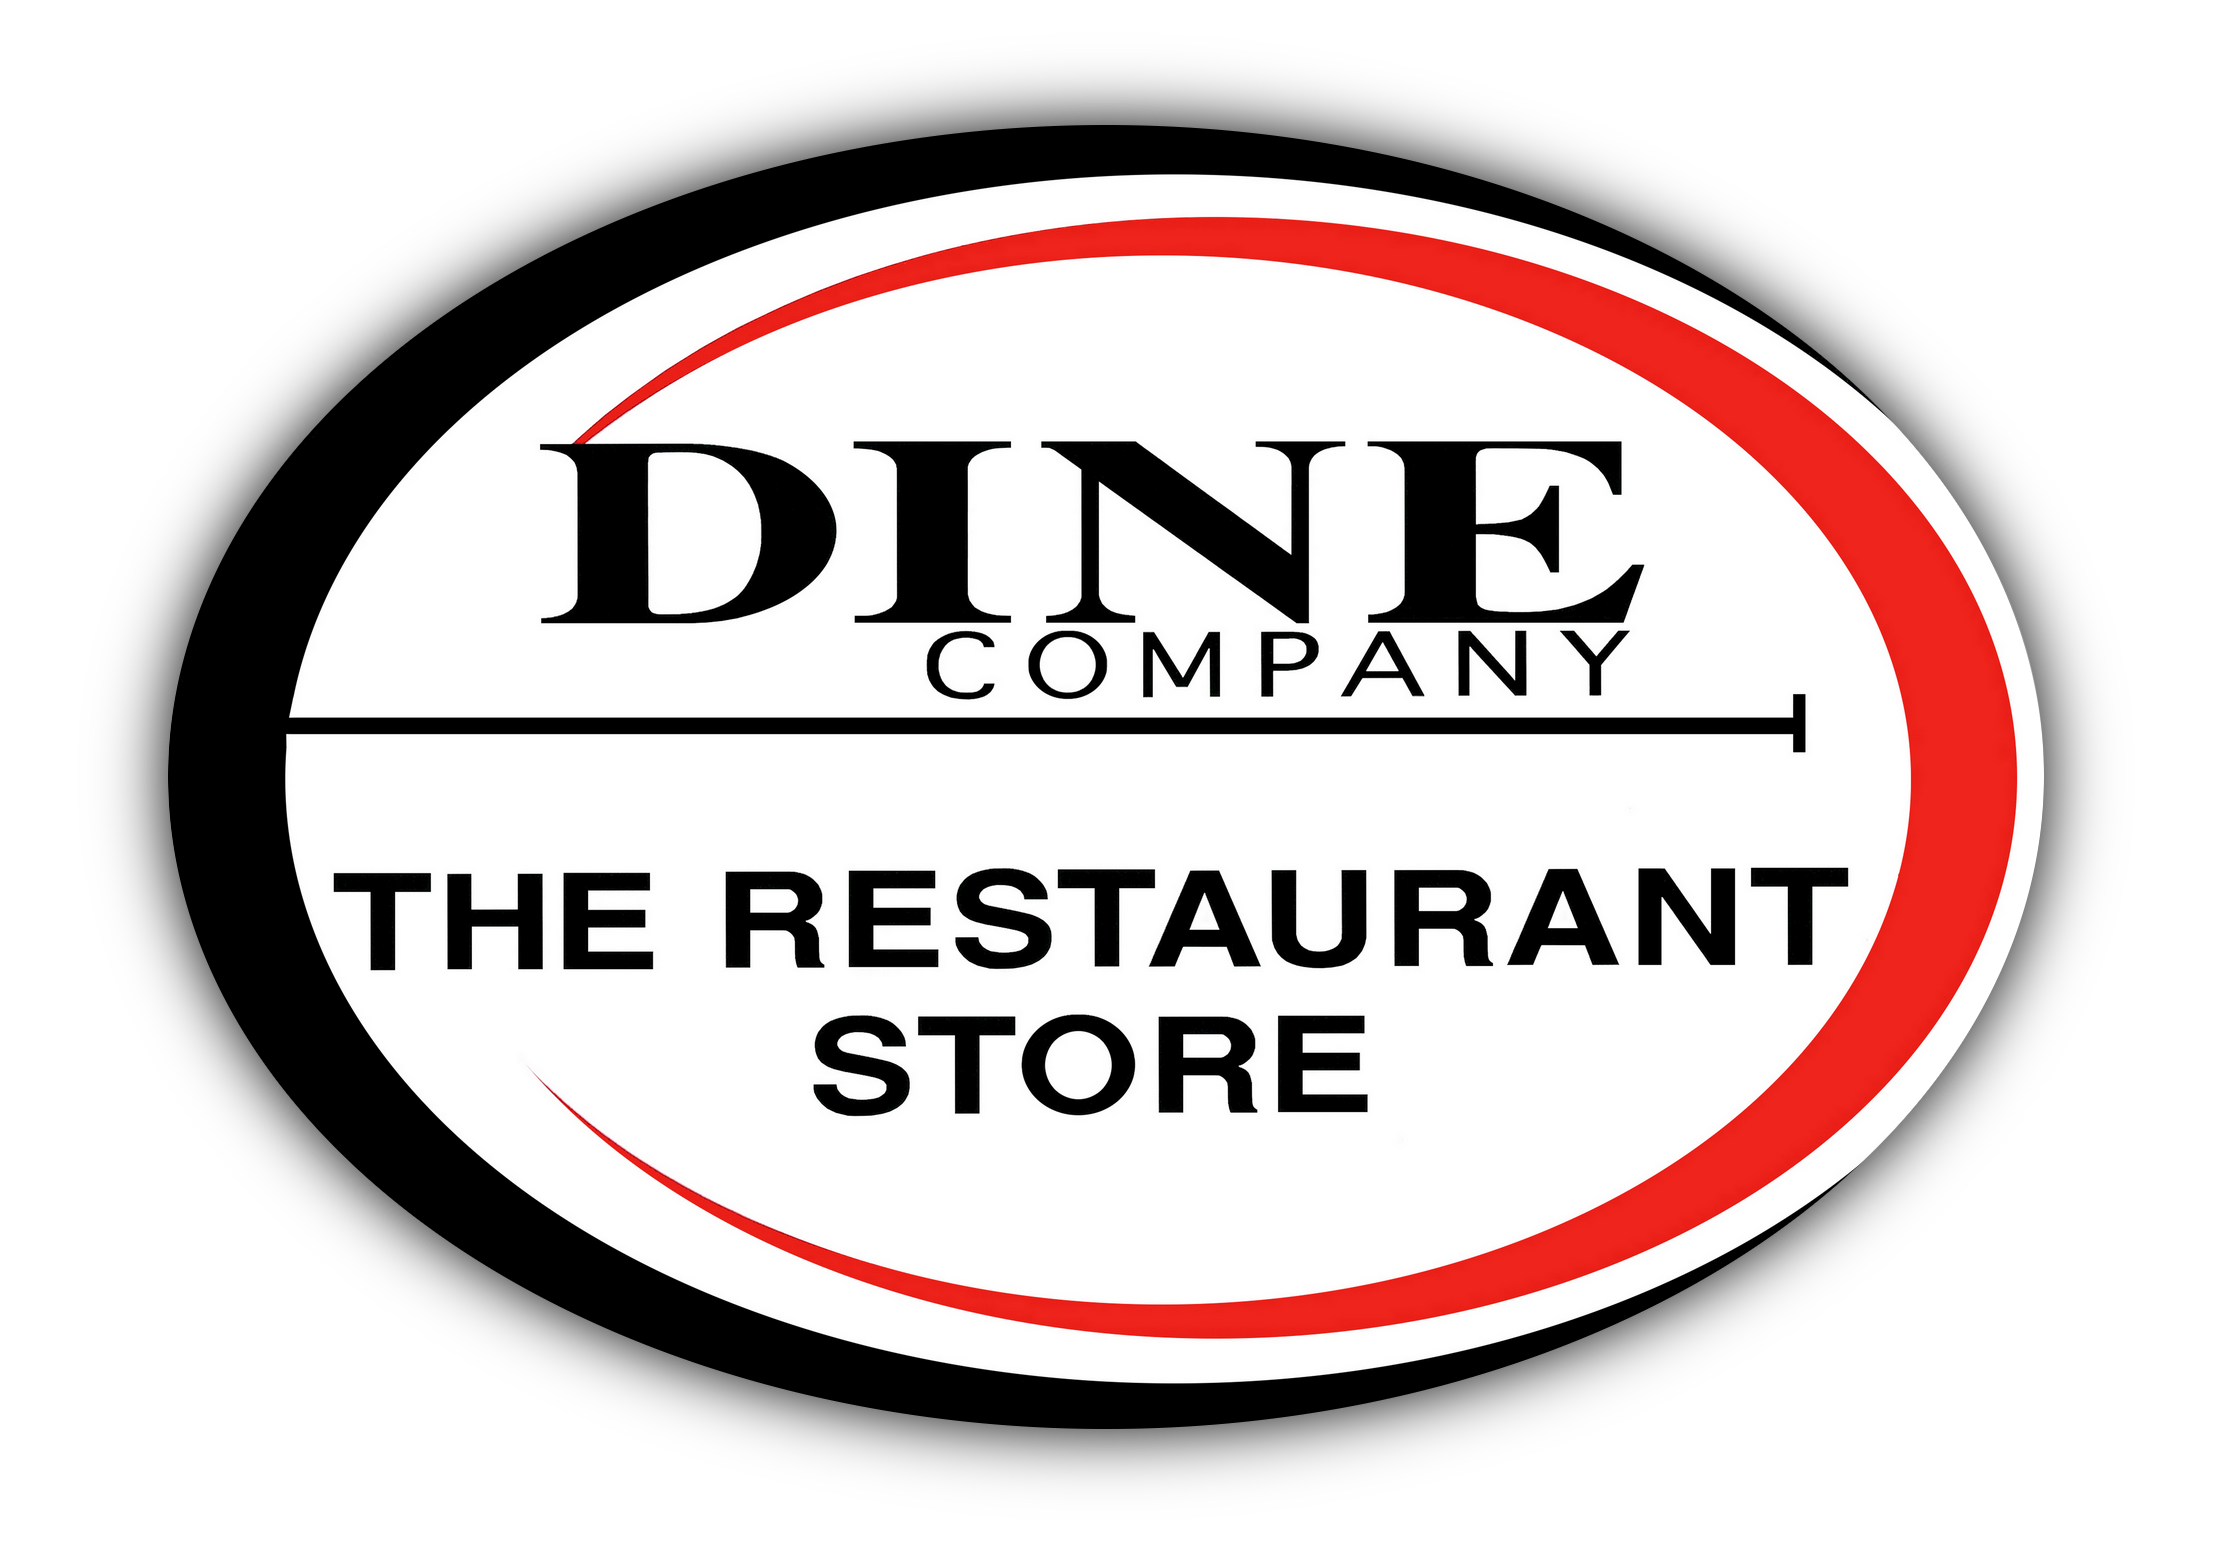 dine-logo-shadow.png